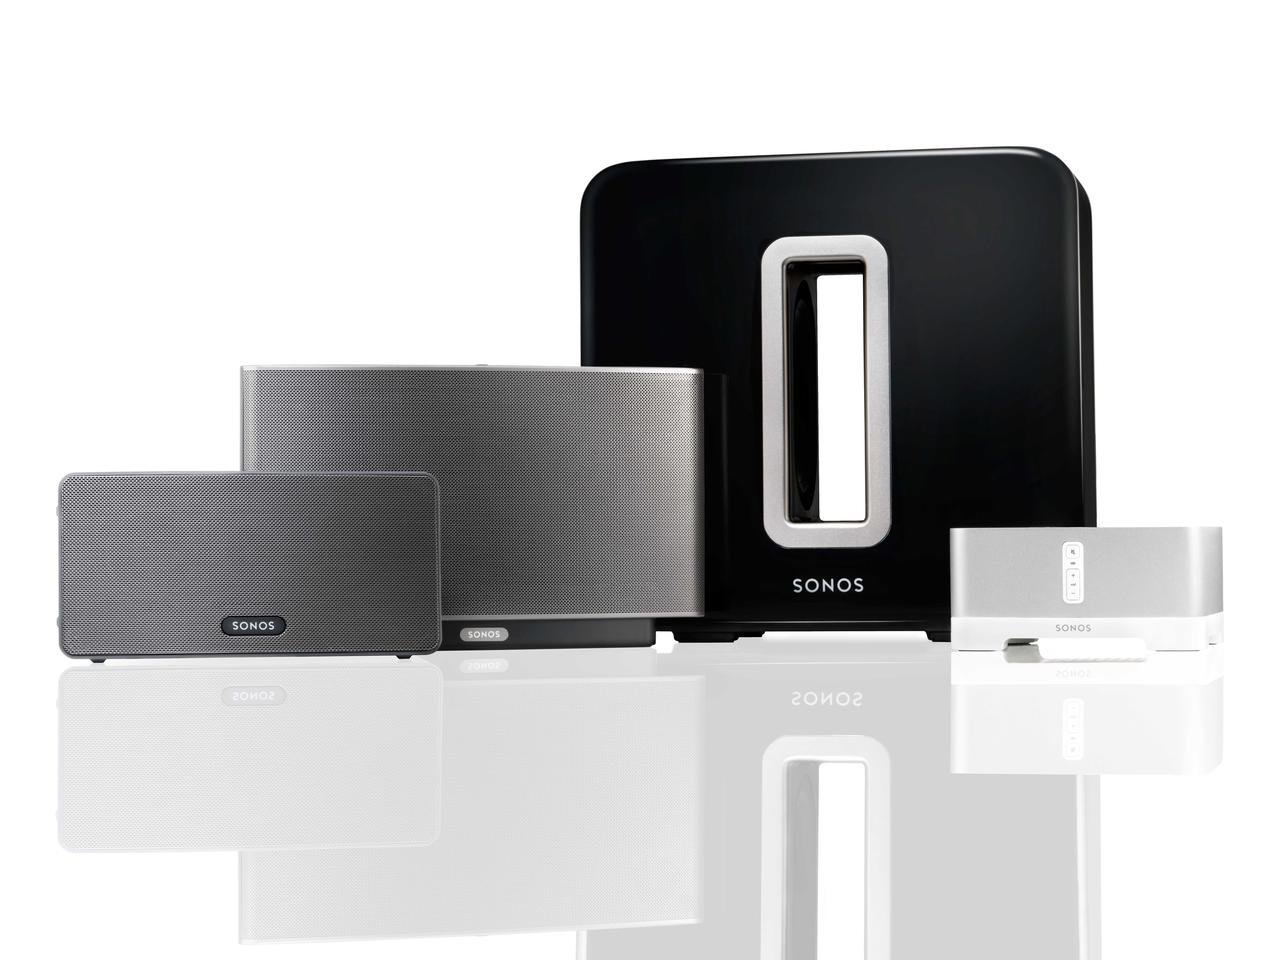 Sonos has announced a new addition to its range of wireless amplified HiFi systems - the SUB is said to add thunderous, pounding bass to an existing setup and benefits from one-button setup